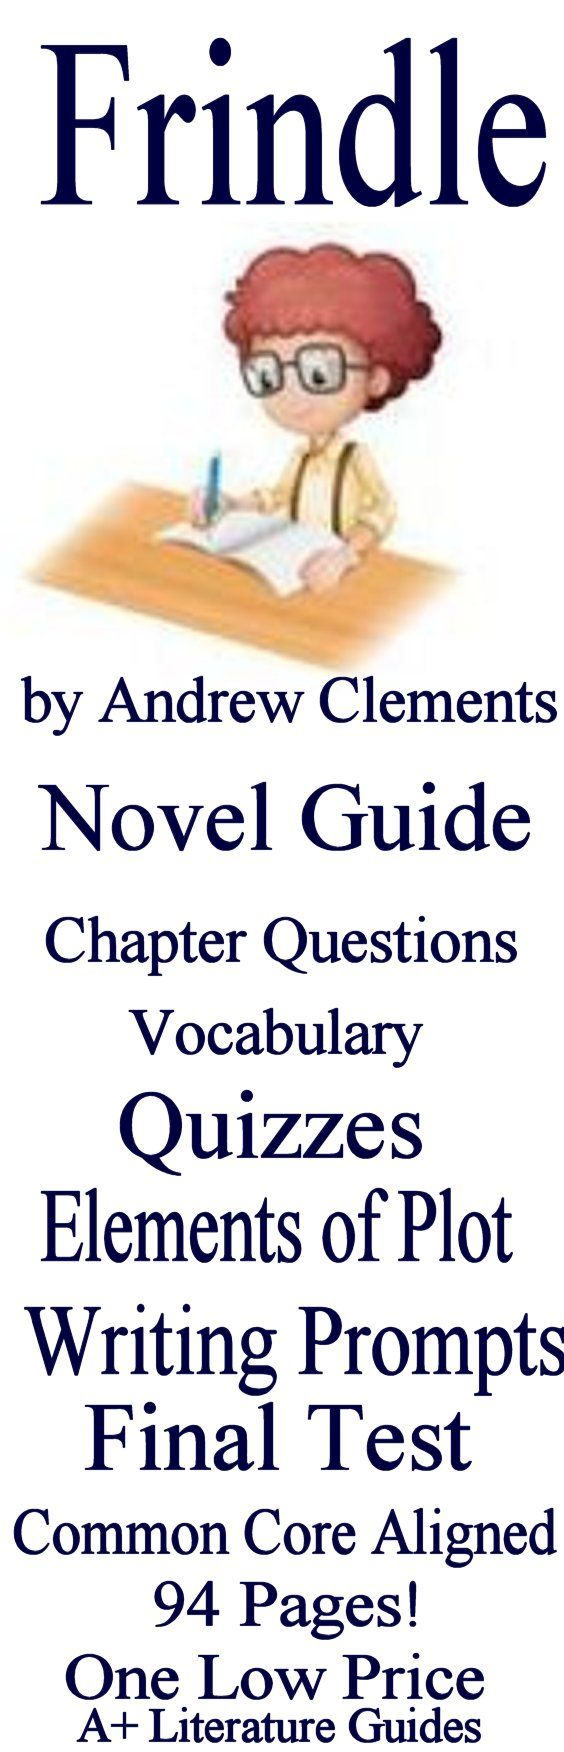 Only $5.00!!  Expanded to include 122 pages! Novel guide for Frindle by Andrew Clements. This guide has everything that you will need to teach and assess the novel including chapter questions and answers, weekly quizzes and tests, interactive activities, and much more!  The calendar guide explains the skills and activities for the day, and weekly assessments have been added.  All assessments are Common-Core aligned.